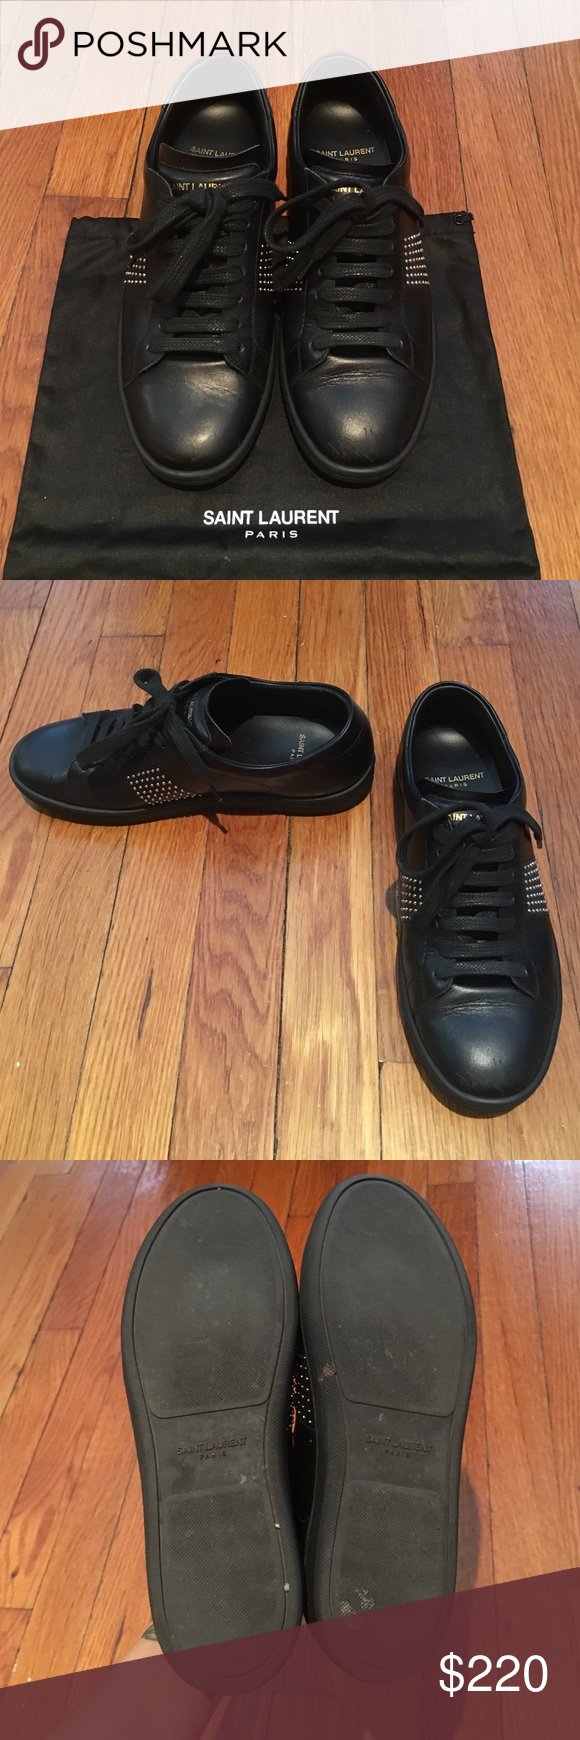 Authentic Saint Laurent black sneaker 36 Authentic saint Laurent black leather studded sneaker 36. it has some scratches on front of toe box and heels has sign of wears but still great condition. Saint Laurent Shoes Sneakers